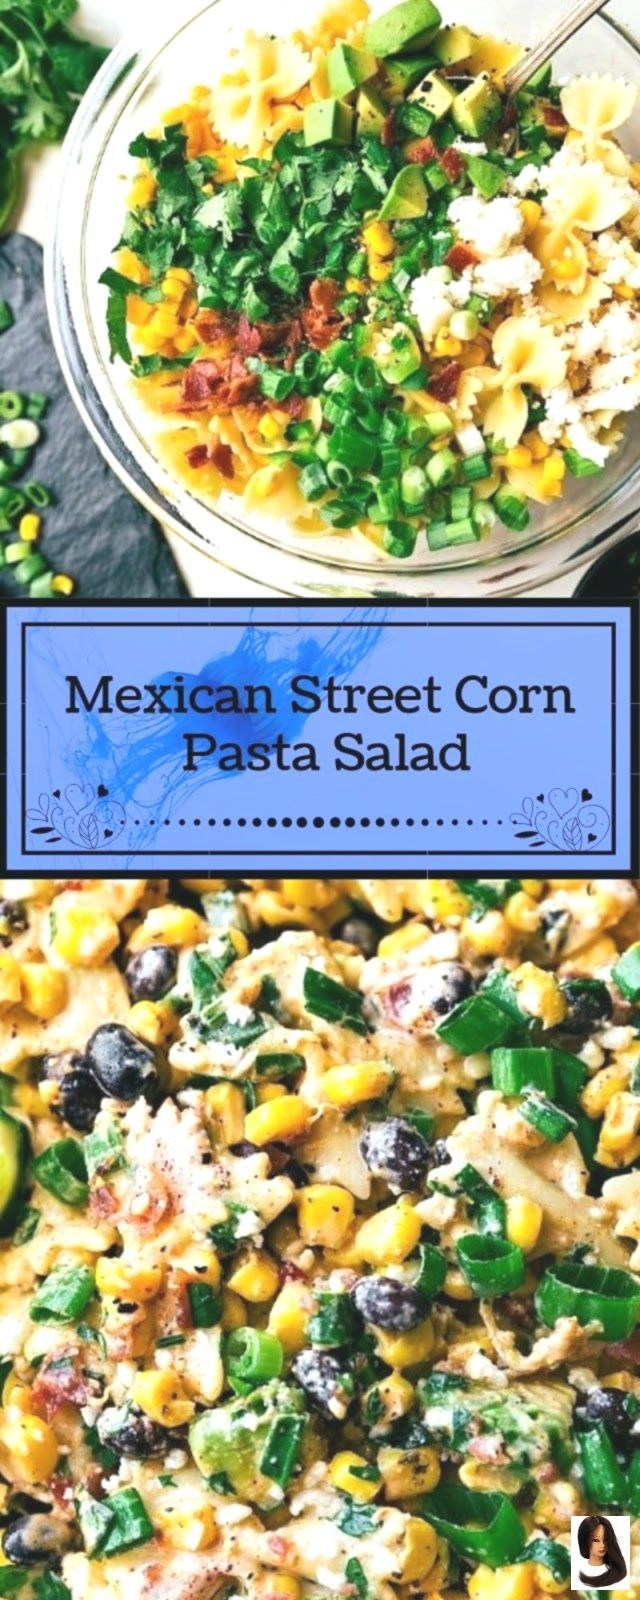 Mexican Street Corn Pasta Salad - Taste Of Home #mexicanstreetcorn #Corn #Home #MEXICAN #Pasta #salad #street #Taste Mexican Street Corn Pasta Salad - Taste Of Home        Mexican Street Corn Pasta Salad - Taste Of Home #mexicanstreetcorn